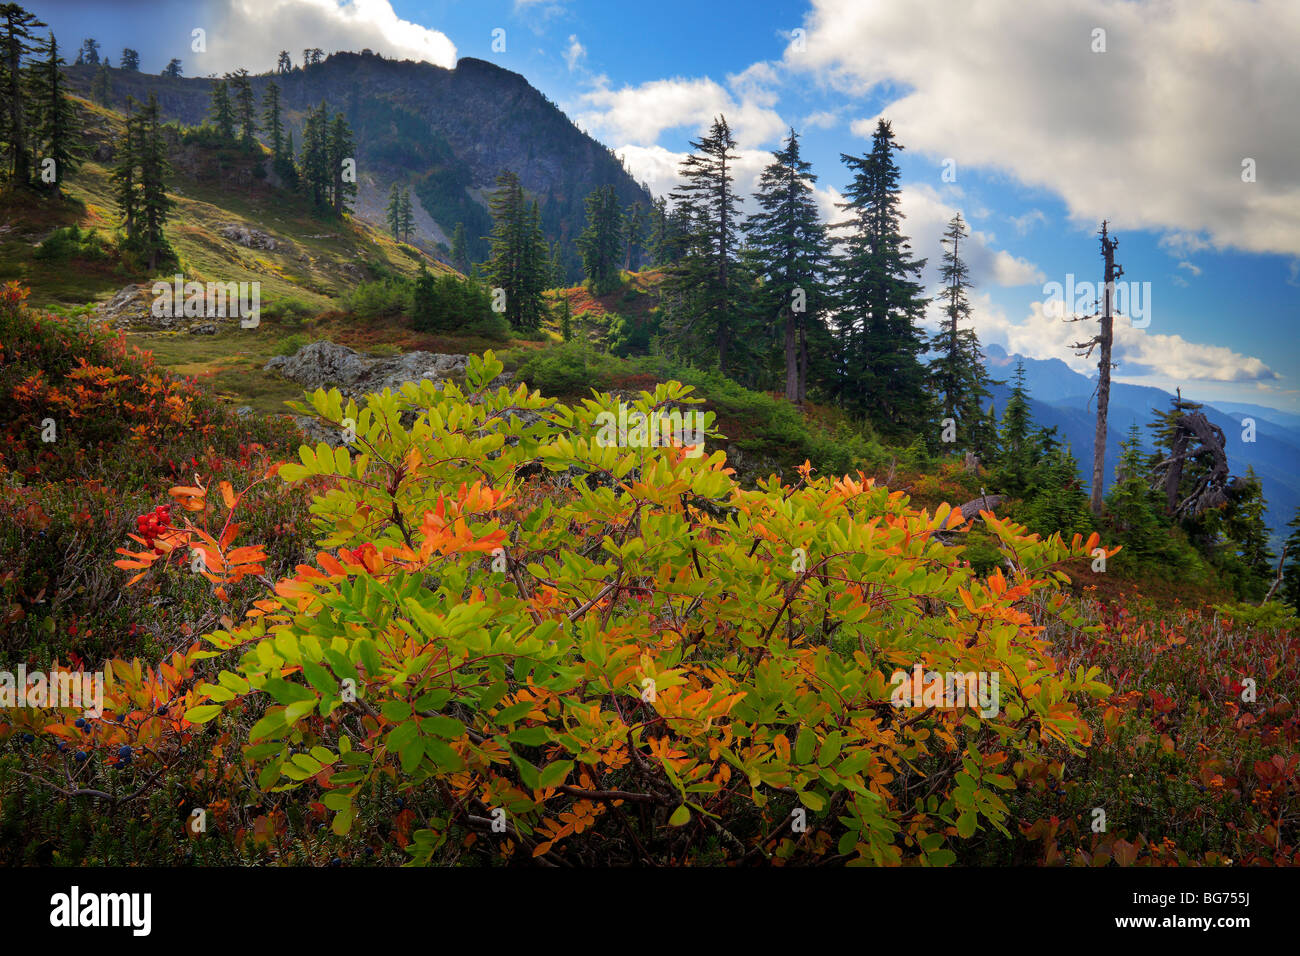 Mountain ash in early fall near Park Butte in the Mount Baker Wilderness - Stock Image